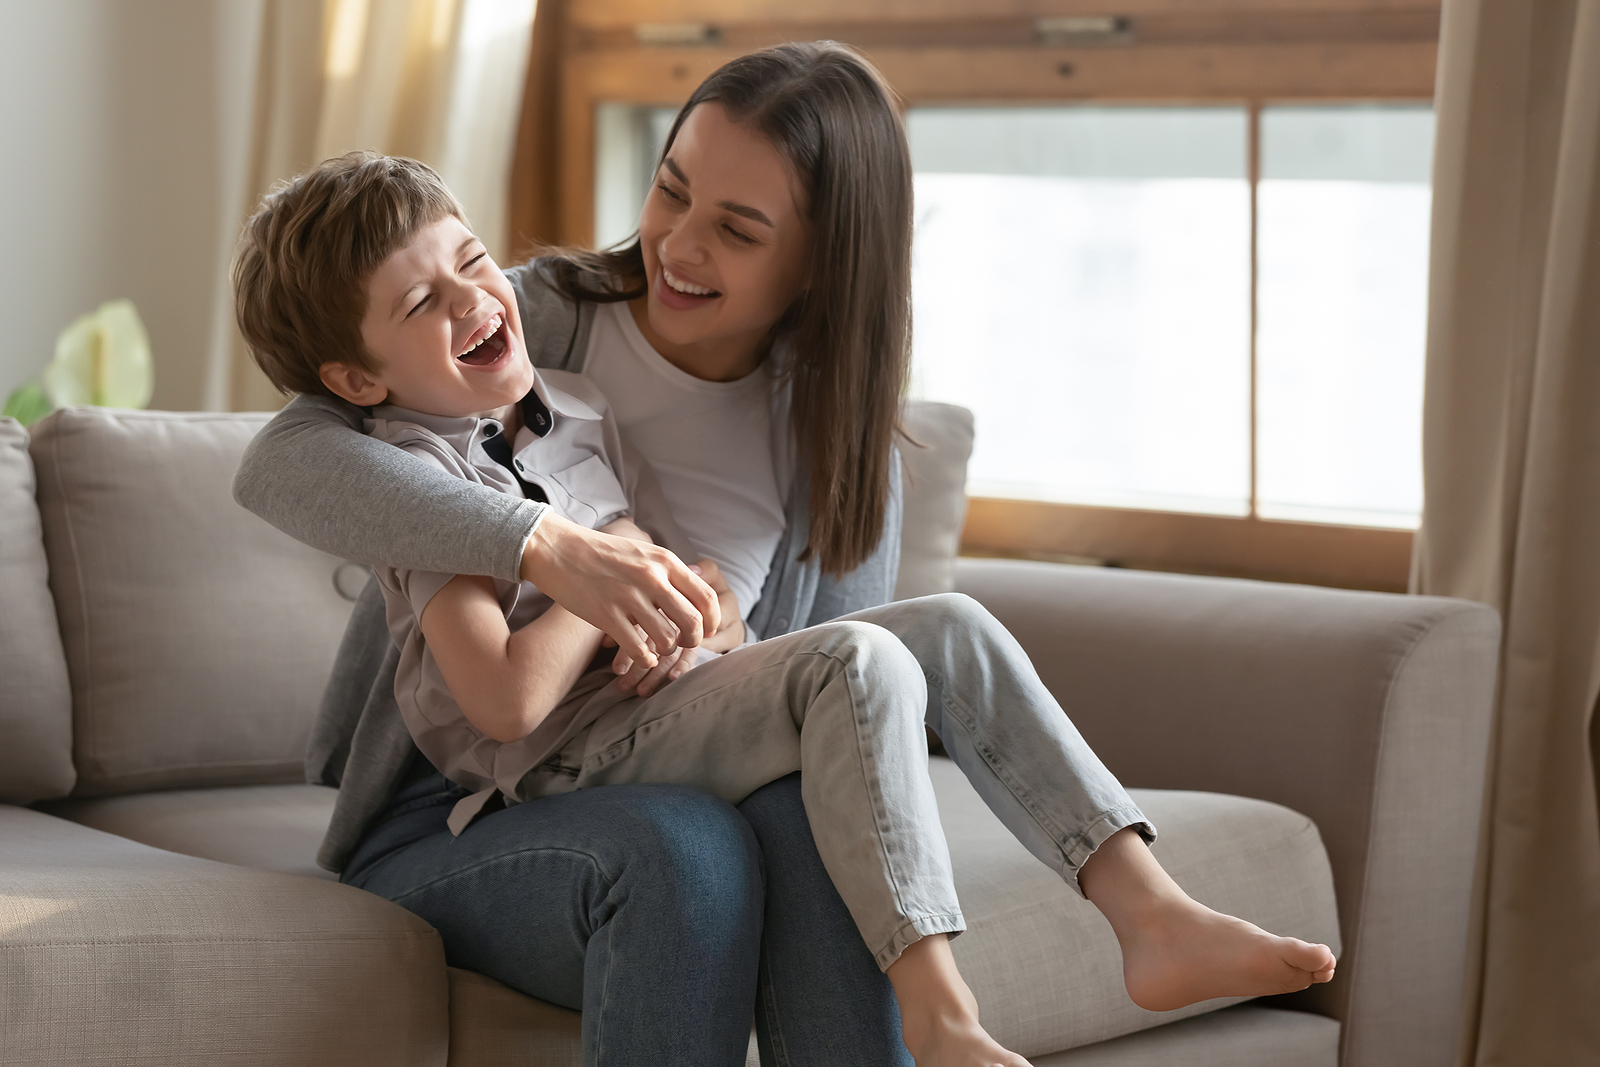 Child and Mom on couch needing hotel babysitting service